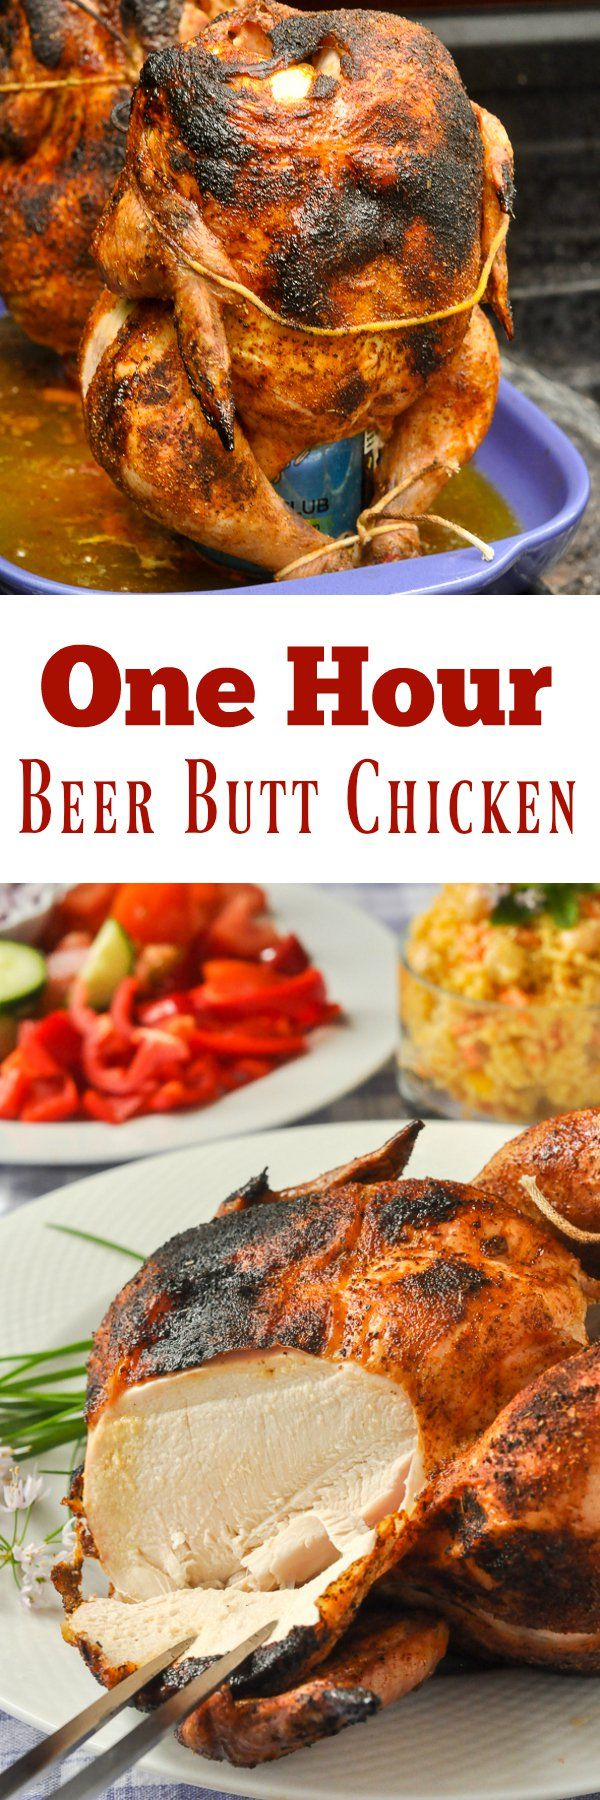 One Hour Beer Butt Chicken - it only takes an hour at high heat to infuse flavour into the dry rubbed chicken, while giving it a little tasty char on the skin and yielding a juicy, succulent result.